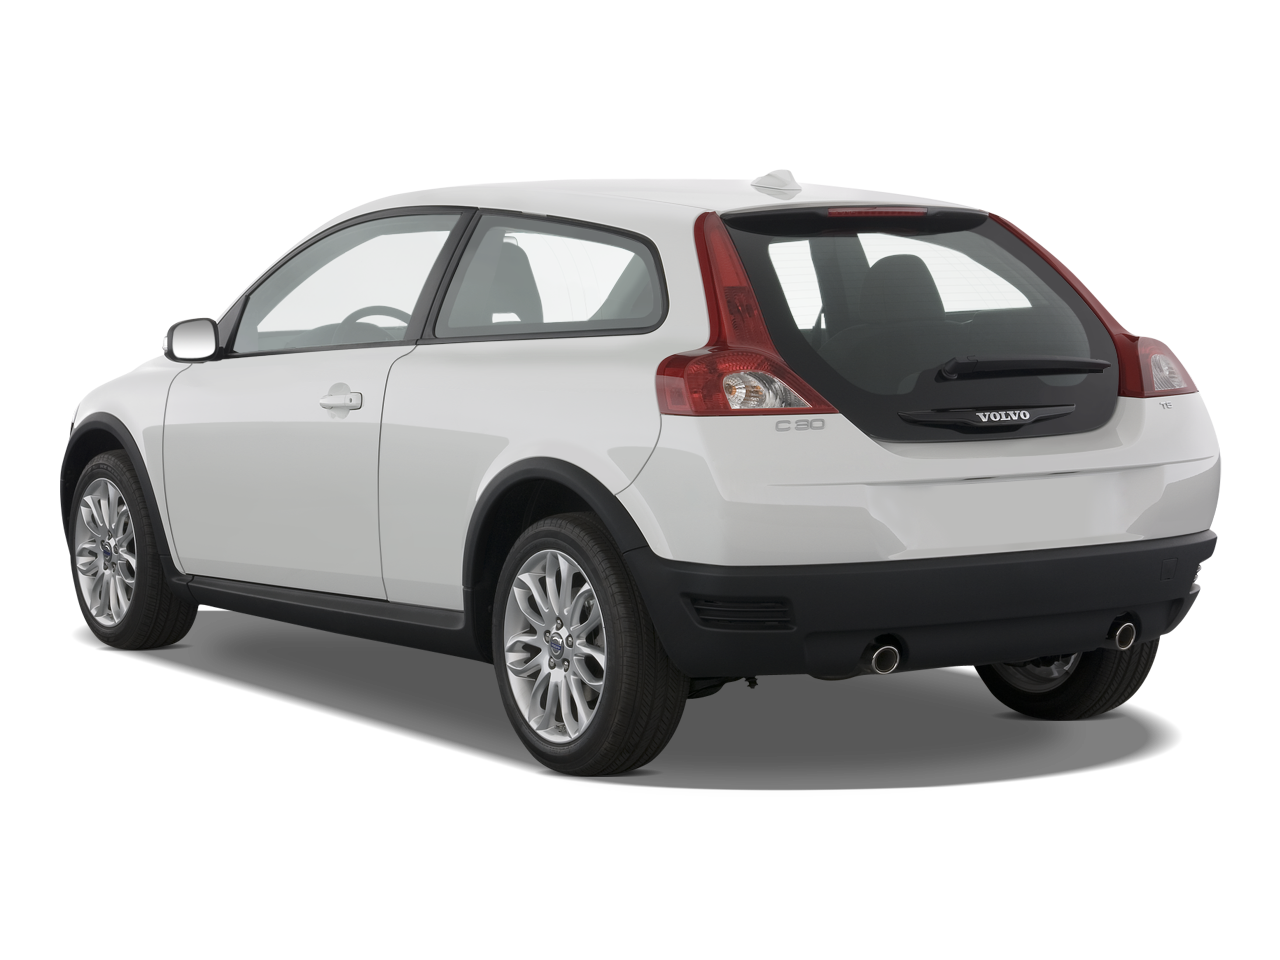 used 2013 volvo c30 for sale pricing features edmunds autos post. Black Bedroom Furniture Sets. Home Design Ideas